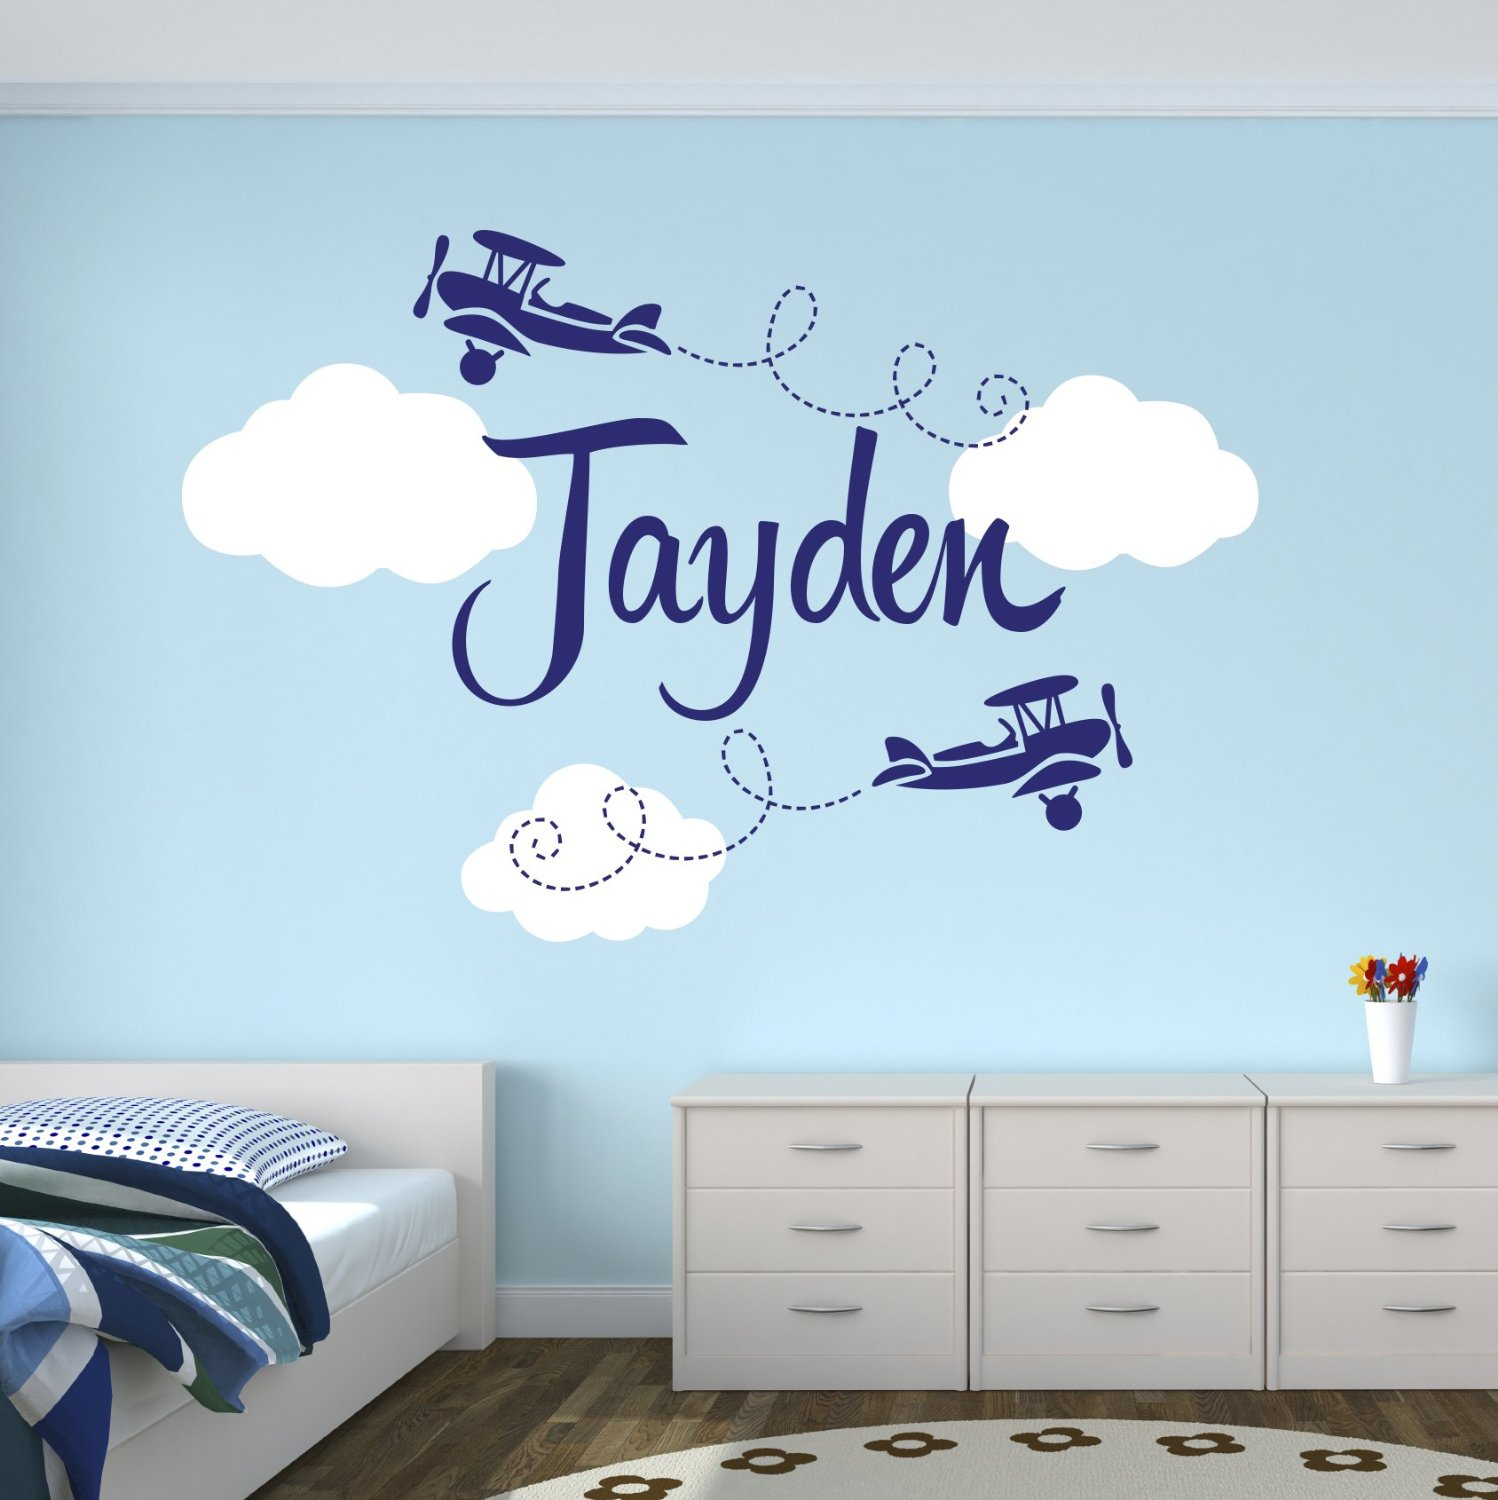 Personalized Airplane Name Clouds Decal Nursery Decor Home Decoration Kids Children Room Vinyl Wall Sticker A 90 In Stickers From